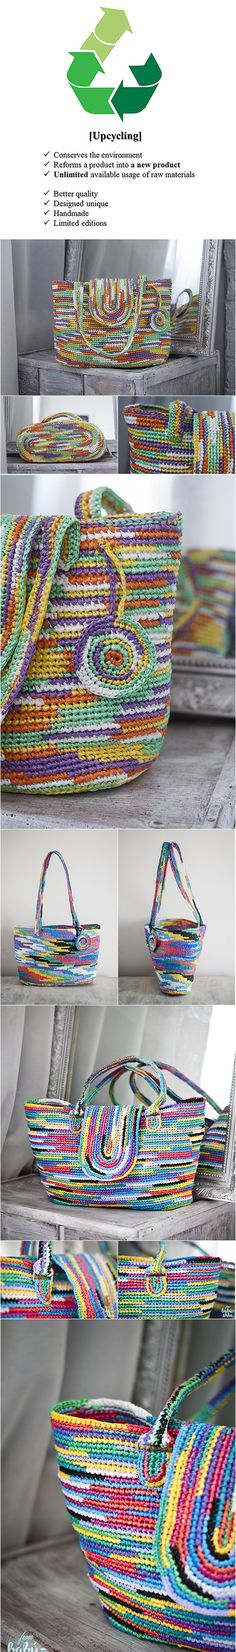 Upcycled crocheted bags made from plarn rainbow bag